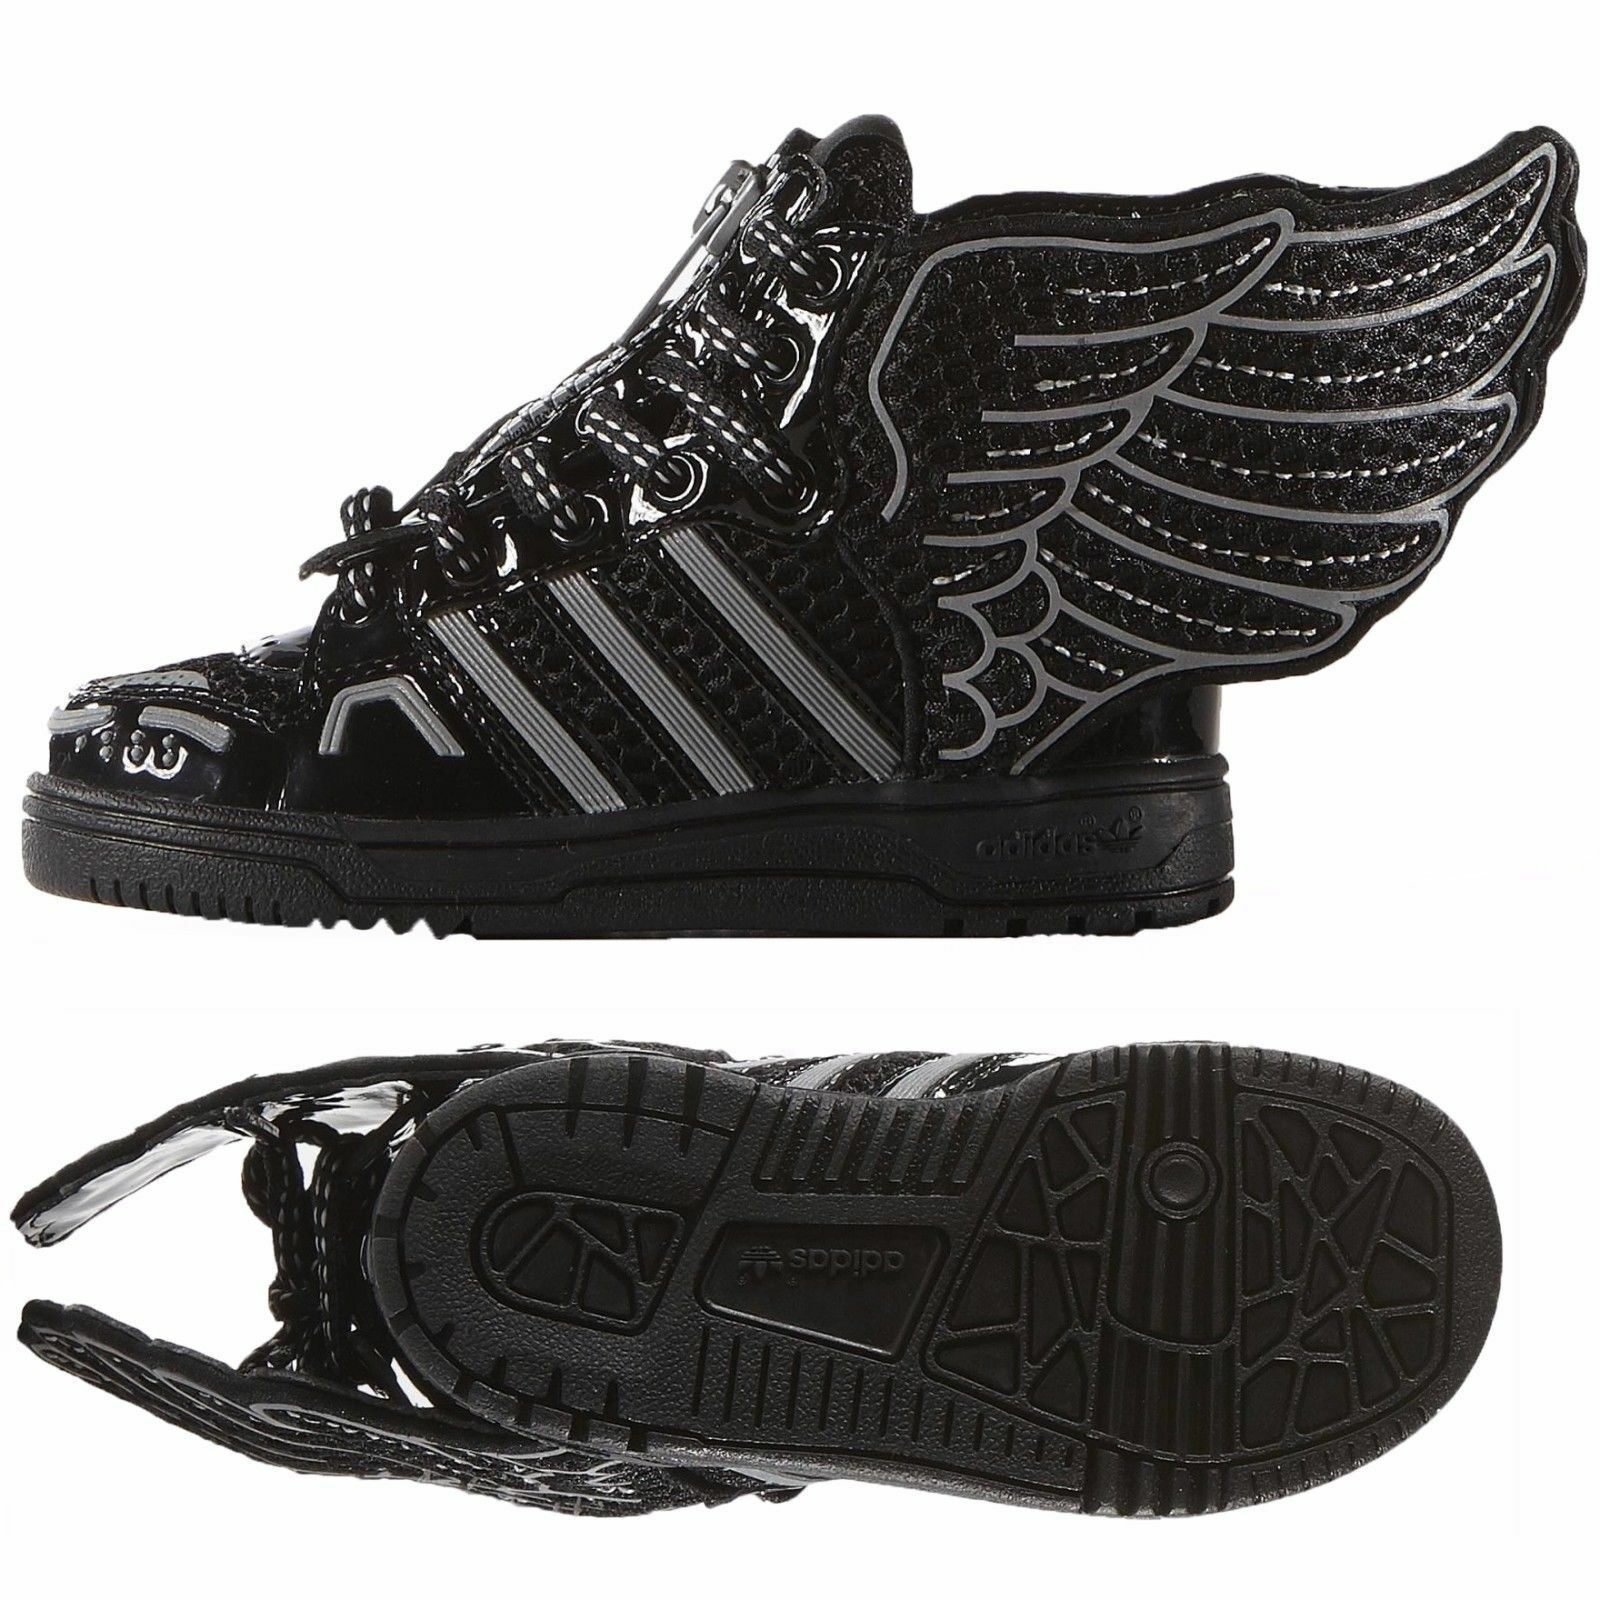 ADIDAS ORIGINALS JEREMY SCOTT JS WINGS 2.0 MESH KIDS BABIES SHOES SIZE 7K S77840